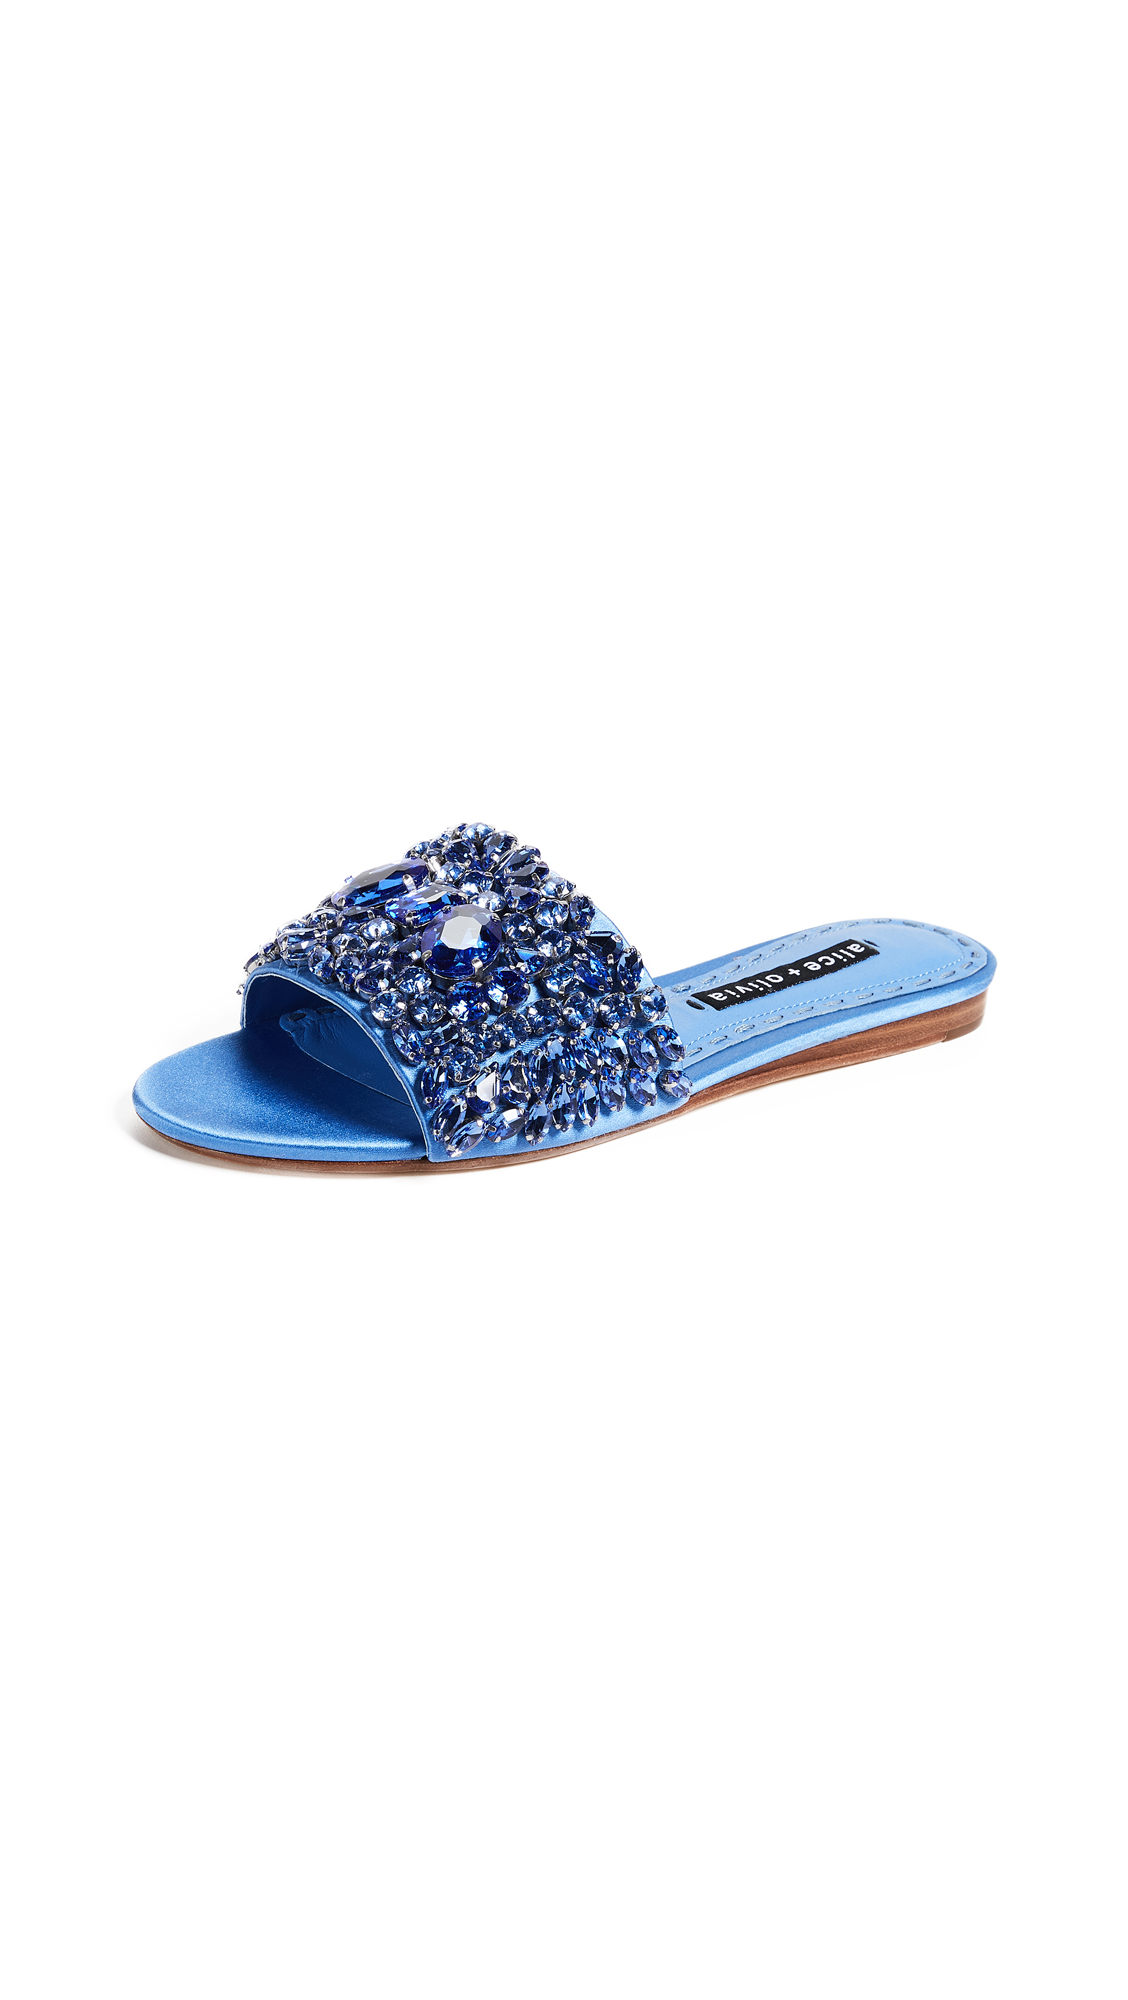 alice + olivia Abbey Crystal Slides - Cerulean